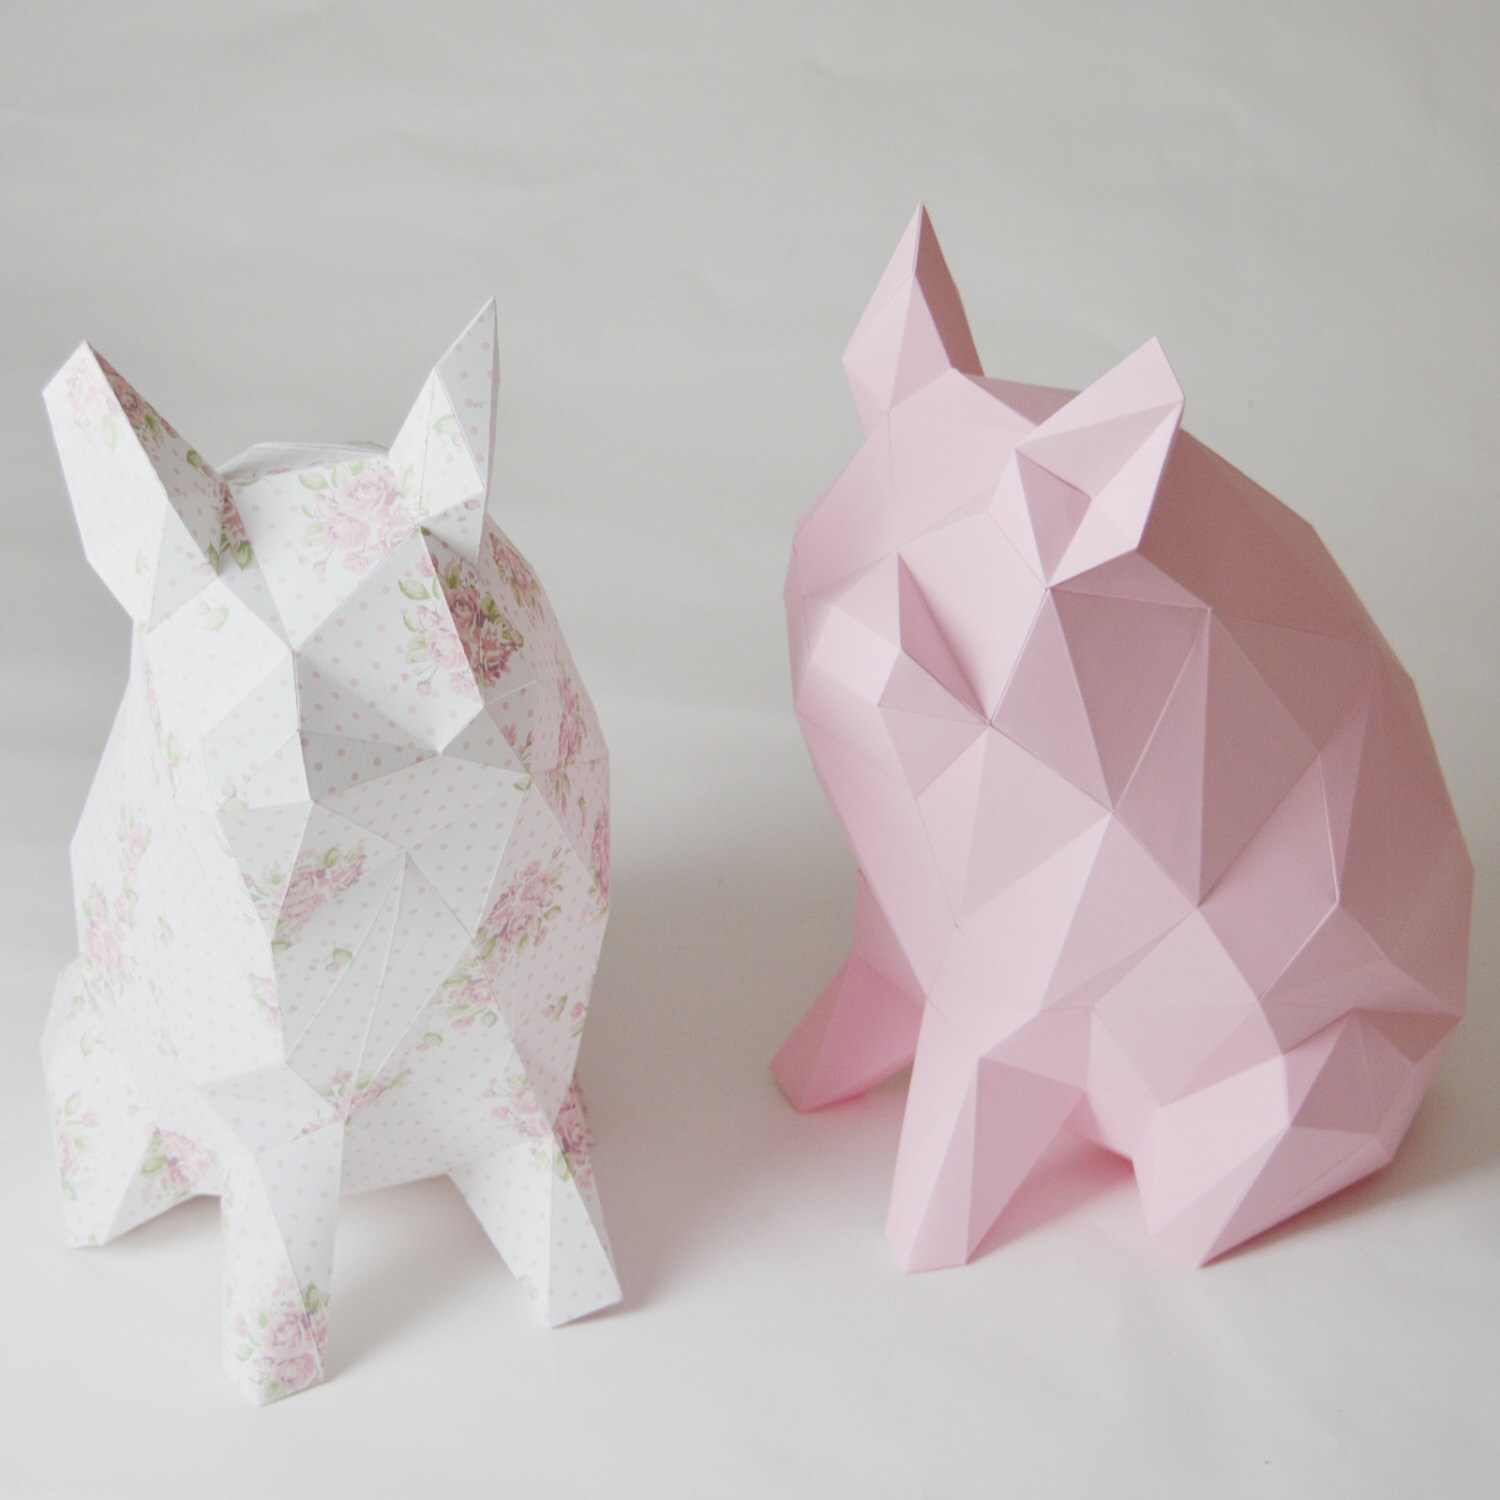 Diy geometric paper vase template final object 33cm porkido my little paper piglet folding kit for a diamond style low poly pig money reviewsmspy